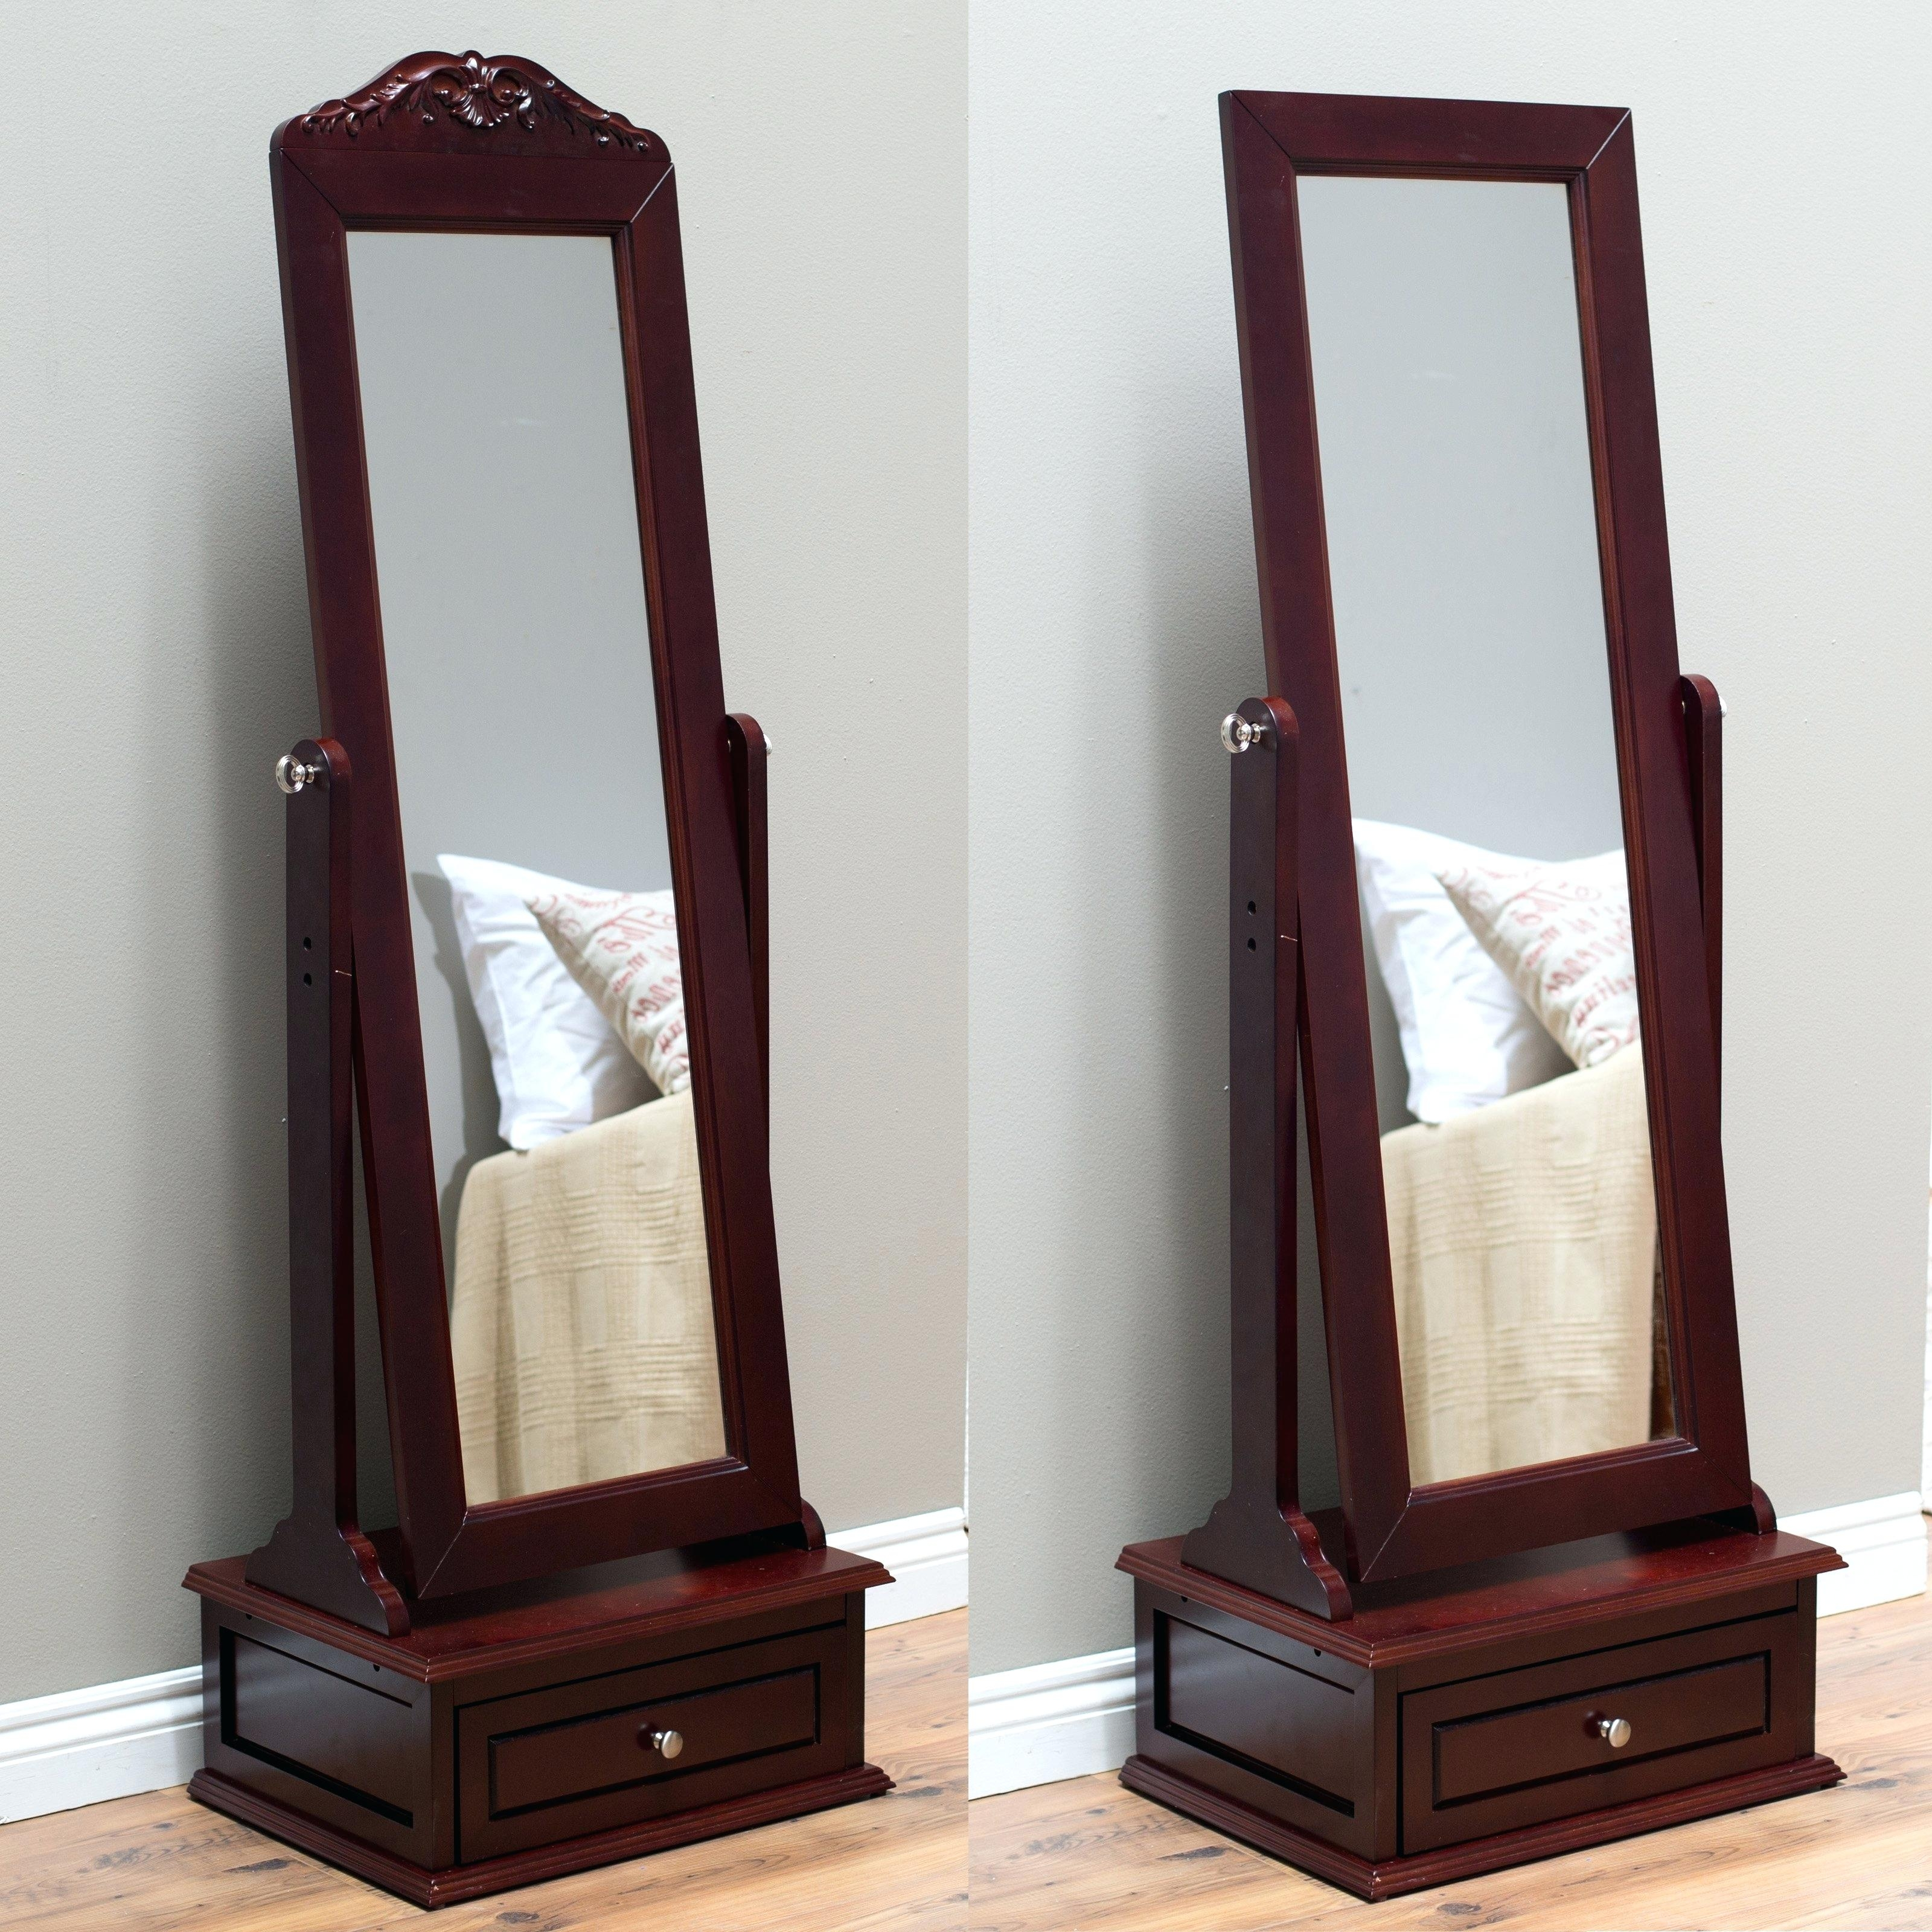 15 Ideas Of Decorative Full Length Mirror